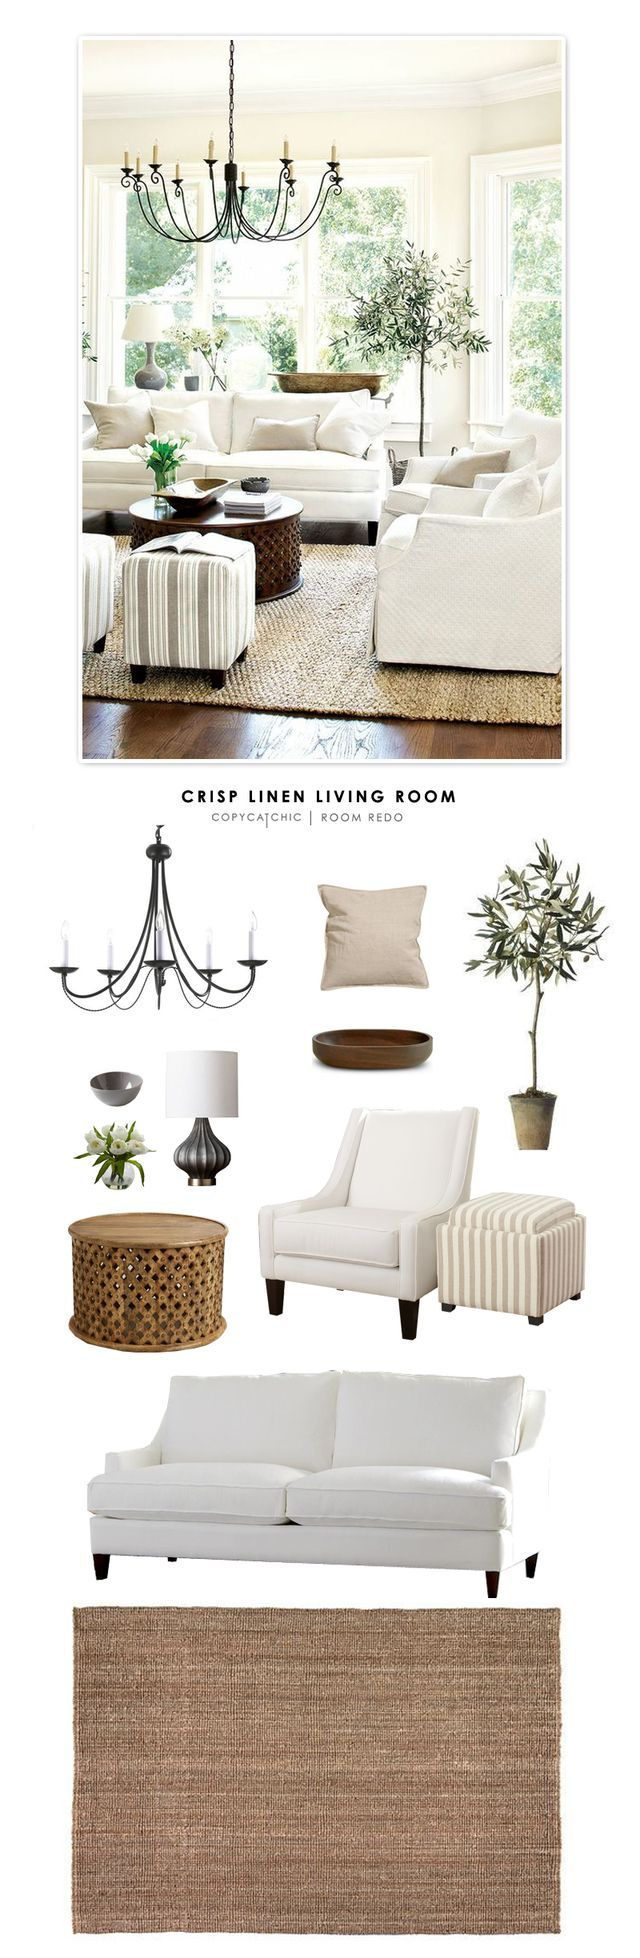 Comment on Copy Cat Chic Room Redo | Crisp Linen Living Room by Liz Baldwin